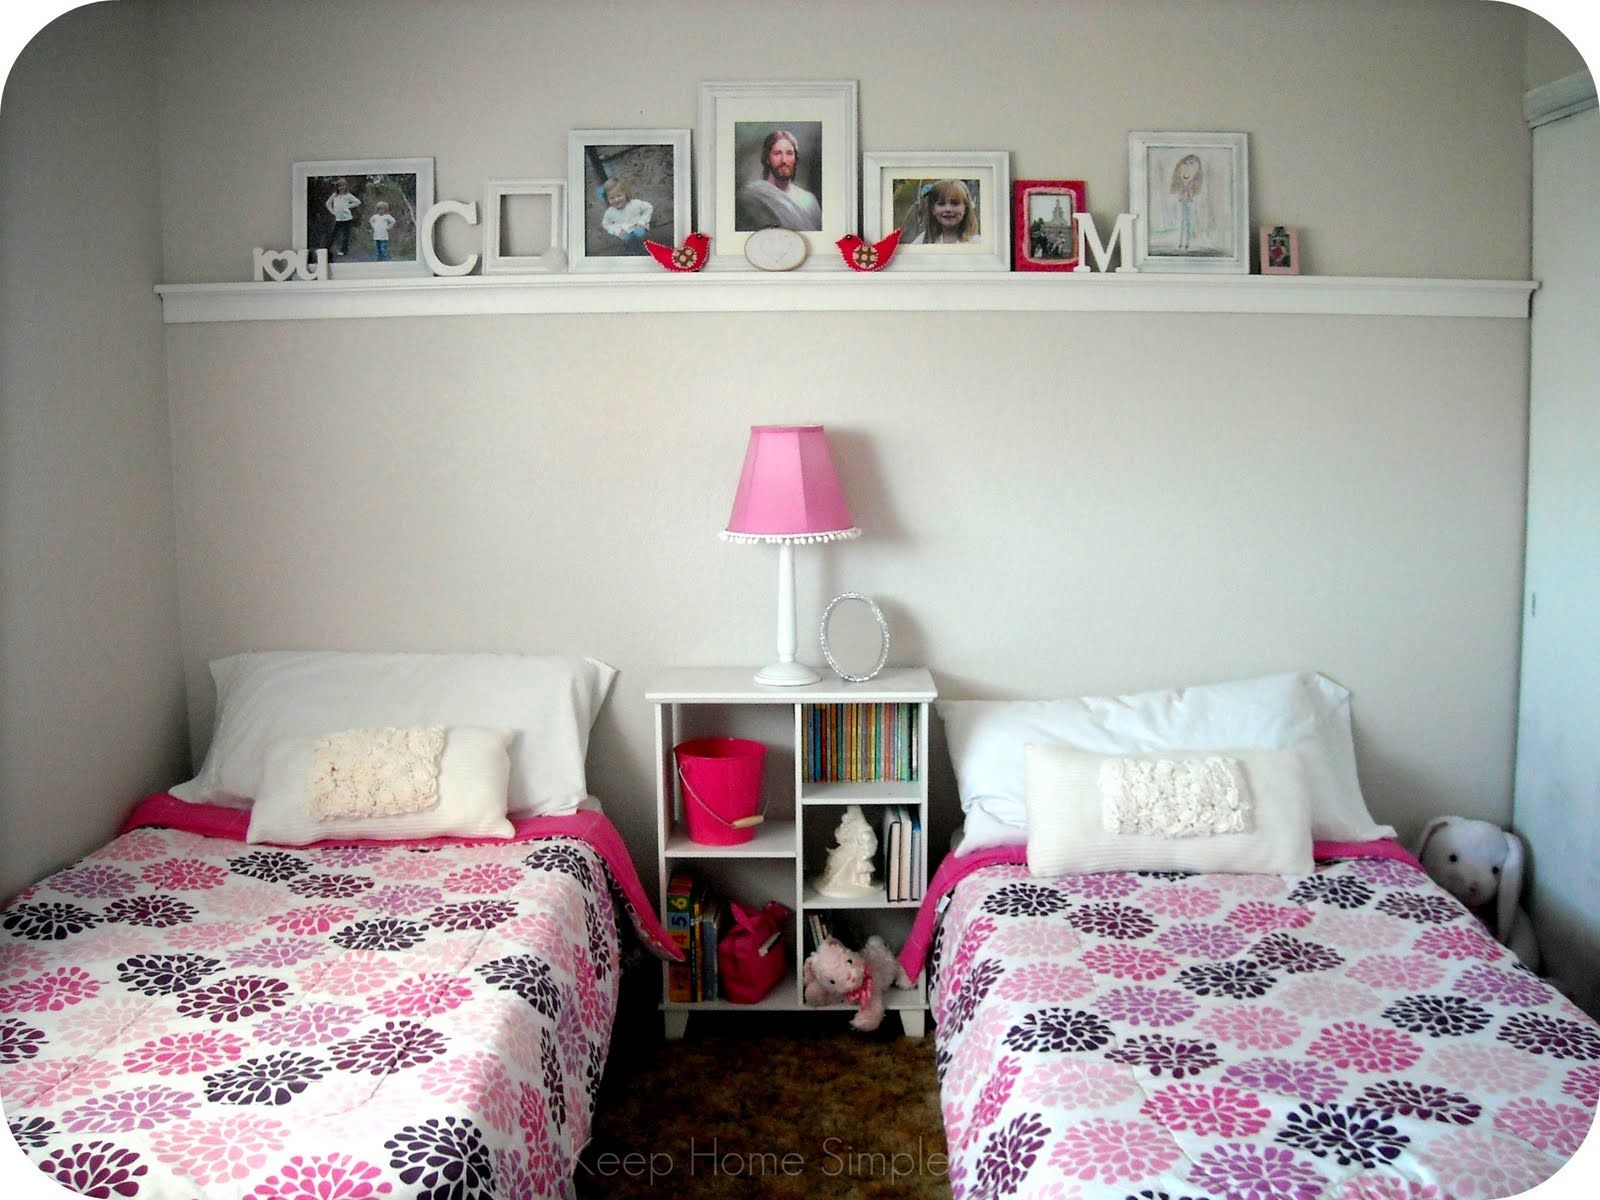 Best Keep Home Simple The Girls Room Very Simple Fix Up 640 x 480